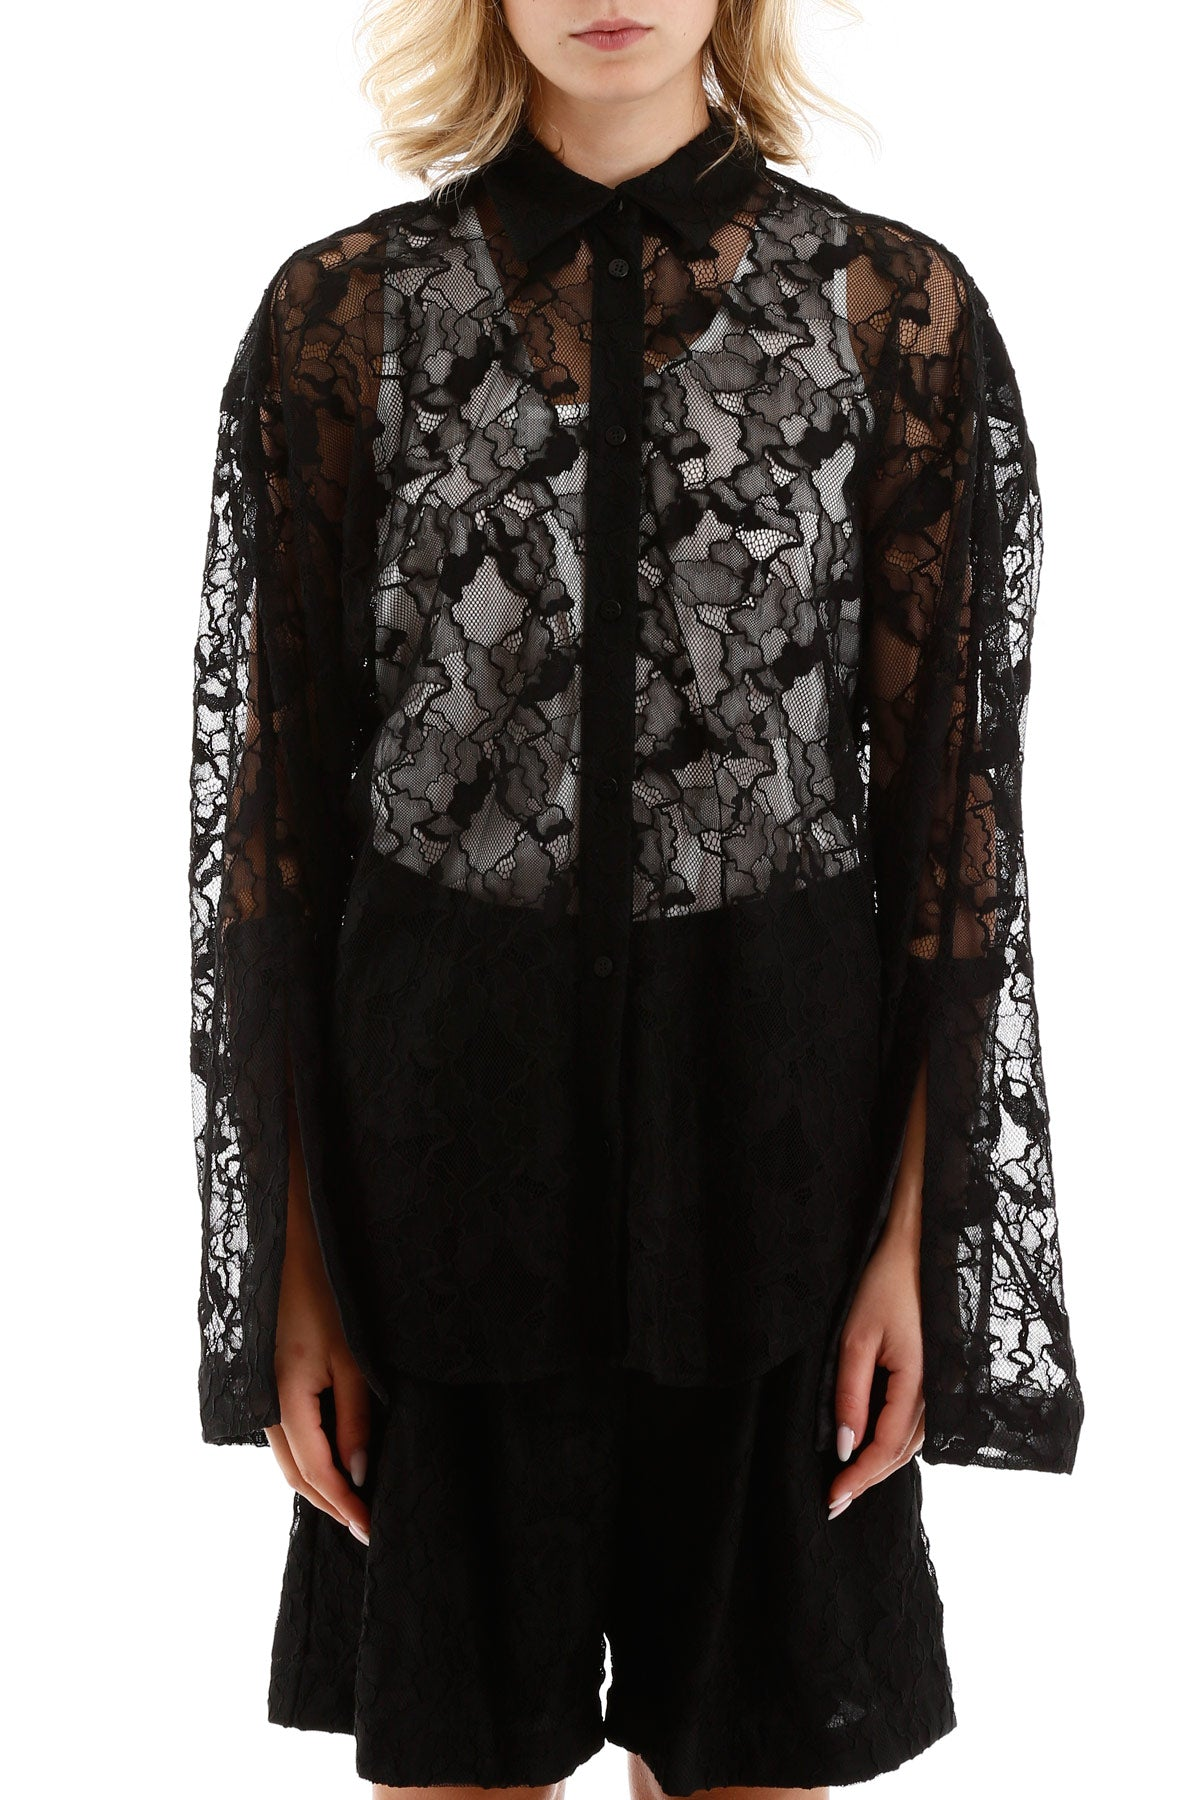 Msgm MSGM LACE SHEER SHIRT